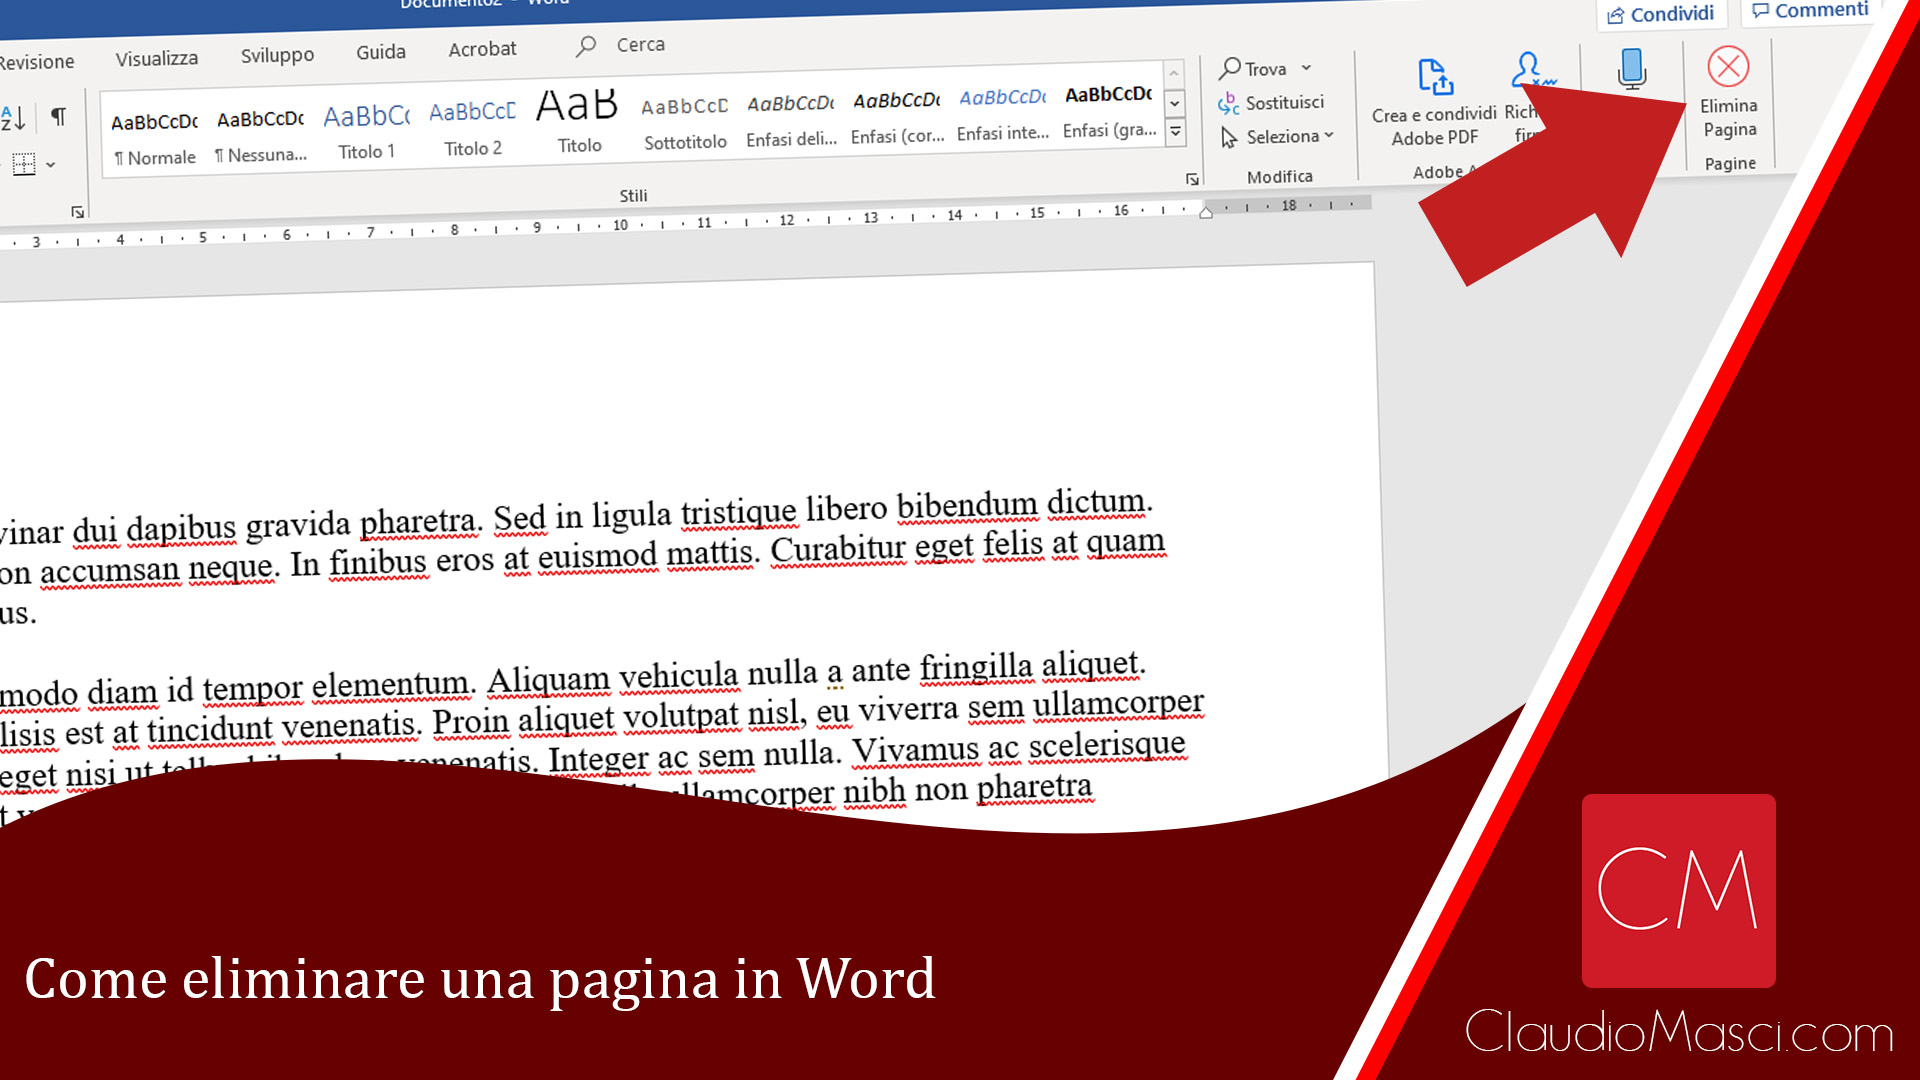 Come eliminare una pagina in Word